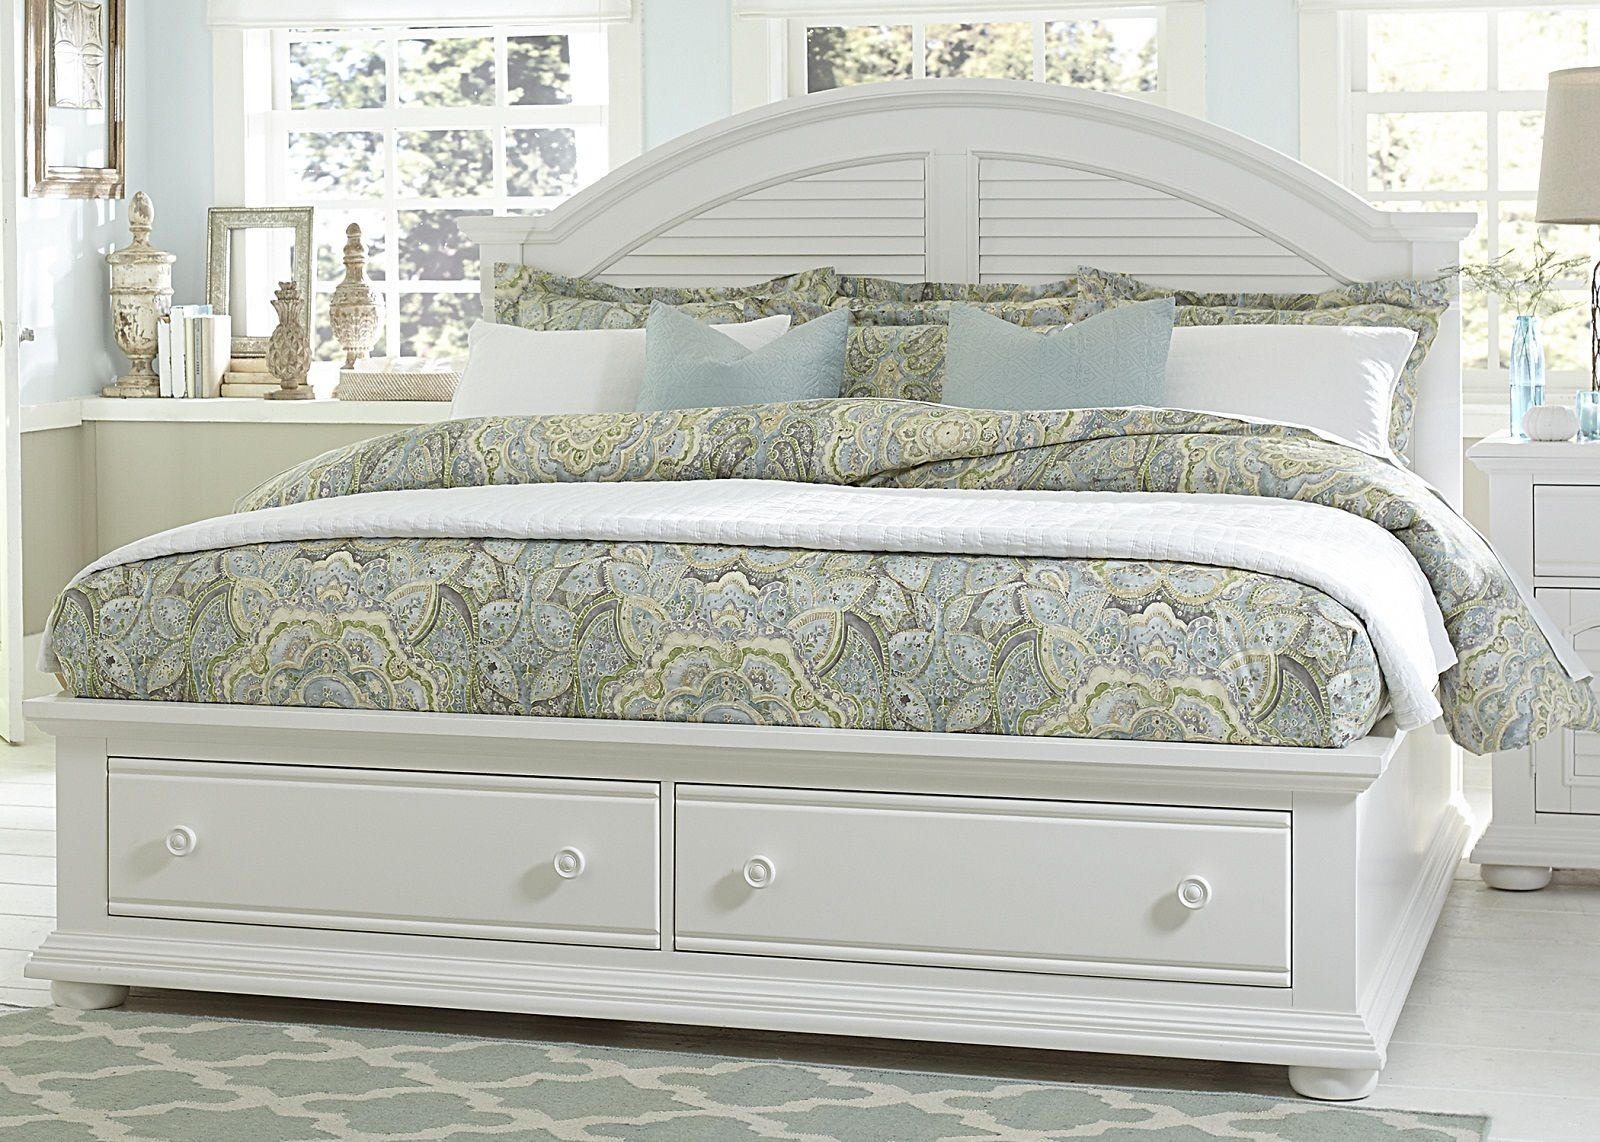 shop for liberty furniture king storage bed and other bedroom sets at gibson furniture in andrews nc cottage design is always in fashion